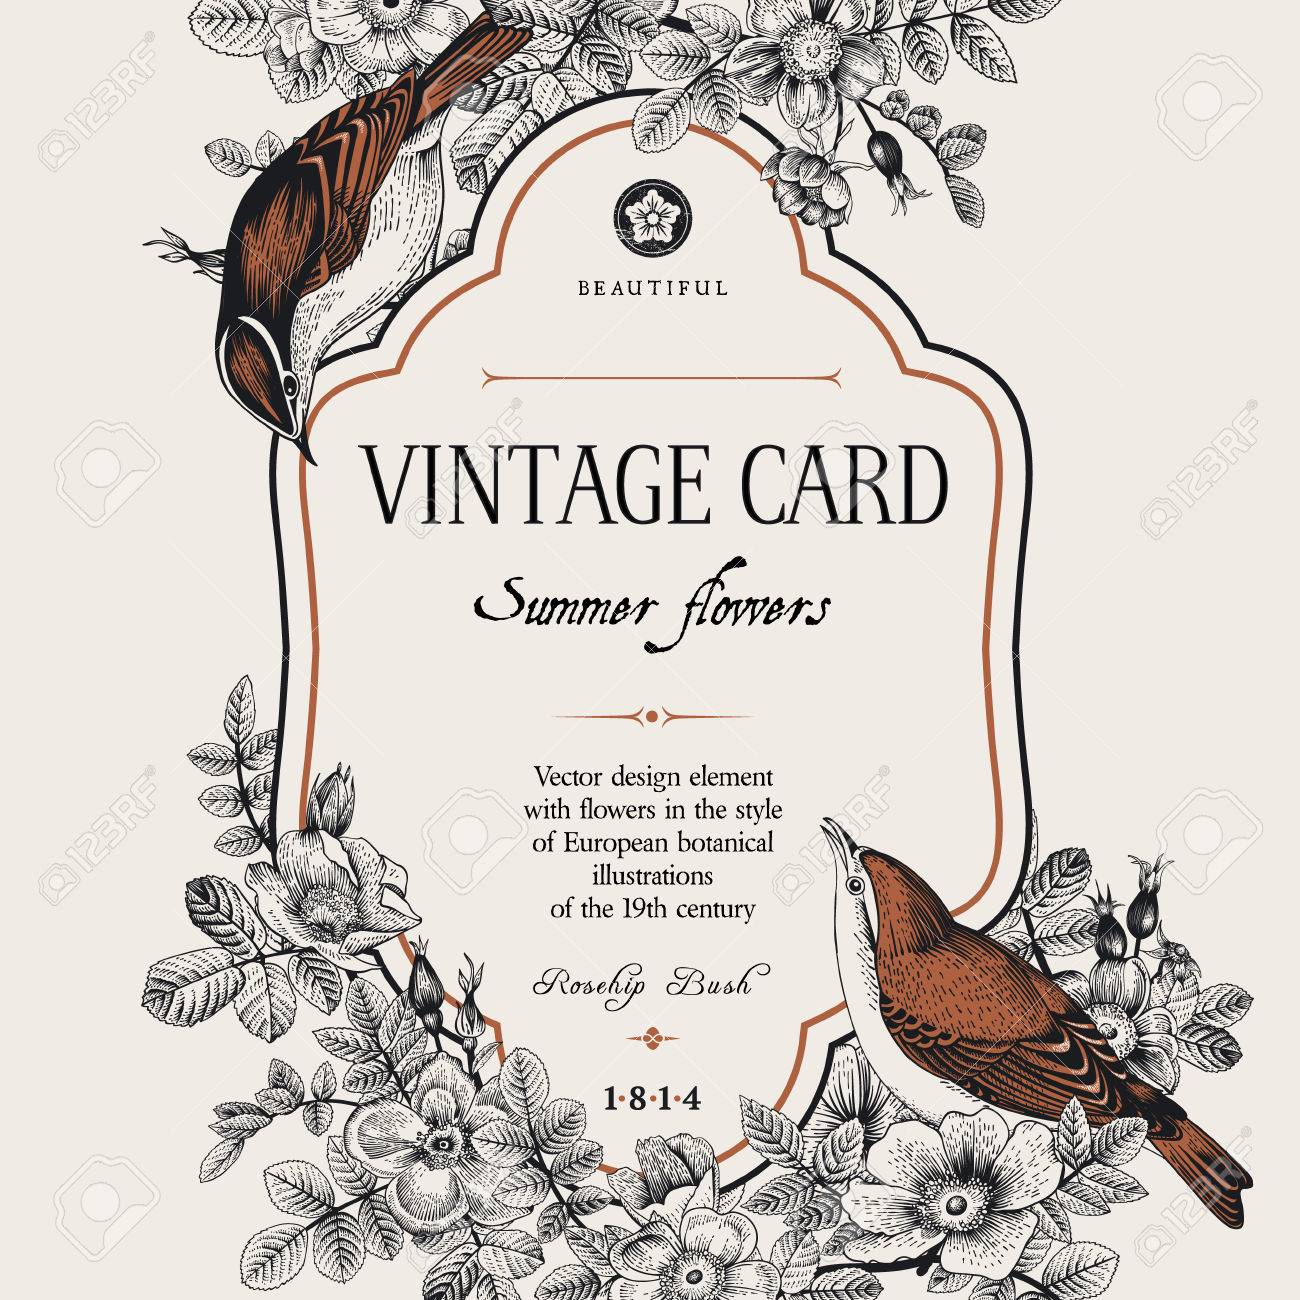 Vector vintage floral card. Two birds in the wild rose bushes. Stock Vector - 45602583